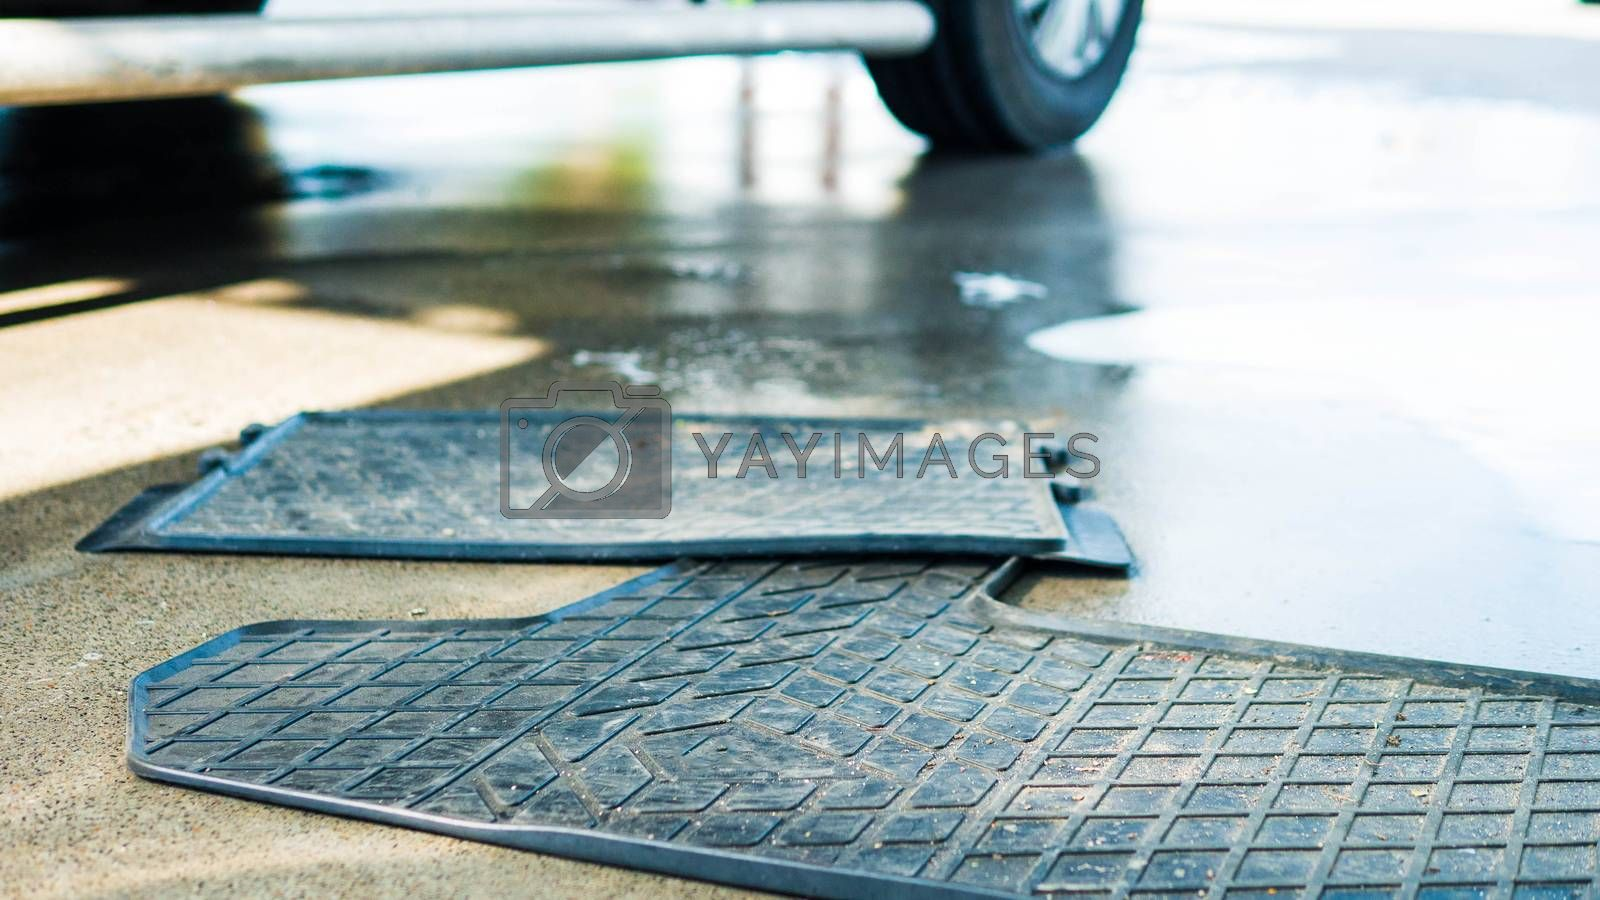 Royalty free image of Dirty car rubber floor mat,close-up. by Andriii_Klapkoo